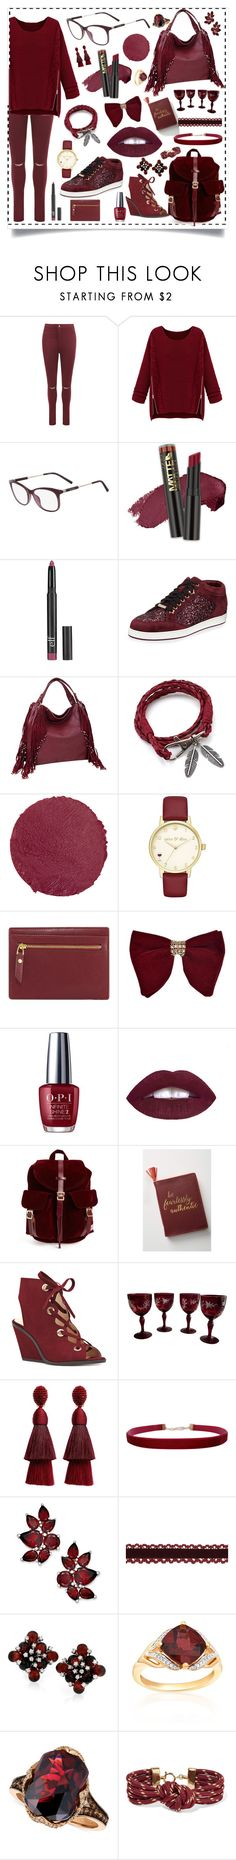 """Wine Red"" by truelyinspiredoutfits ❤ liked on Polyvore featuring WearAll, WithChic, L.A. Girl, Old Navy, Jimmy Choo, Dasein, Lipstick Queen, Kate Spade, Neiman Marcus and OPI"